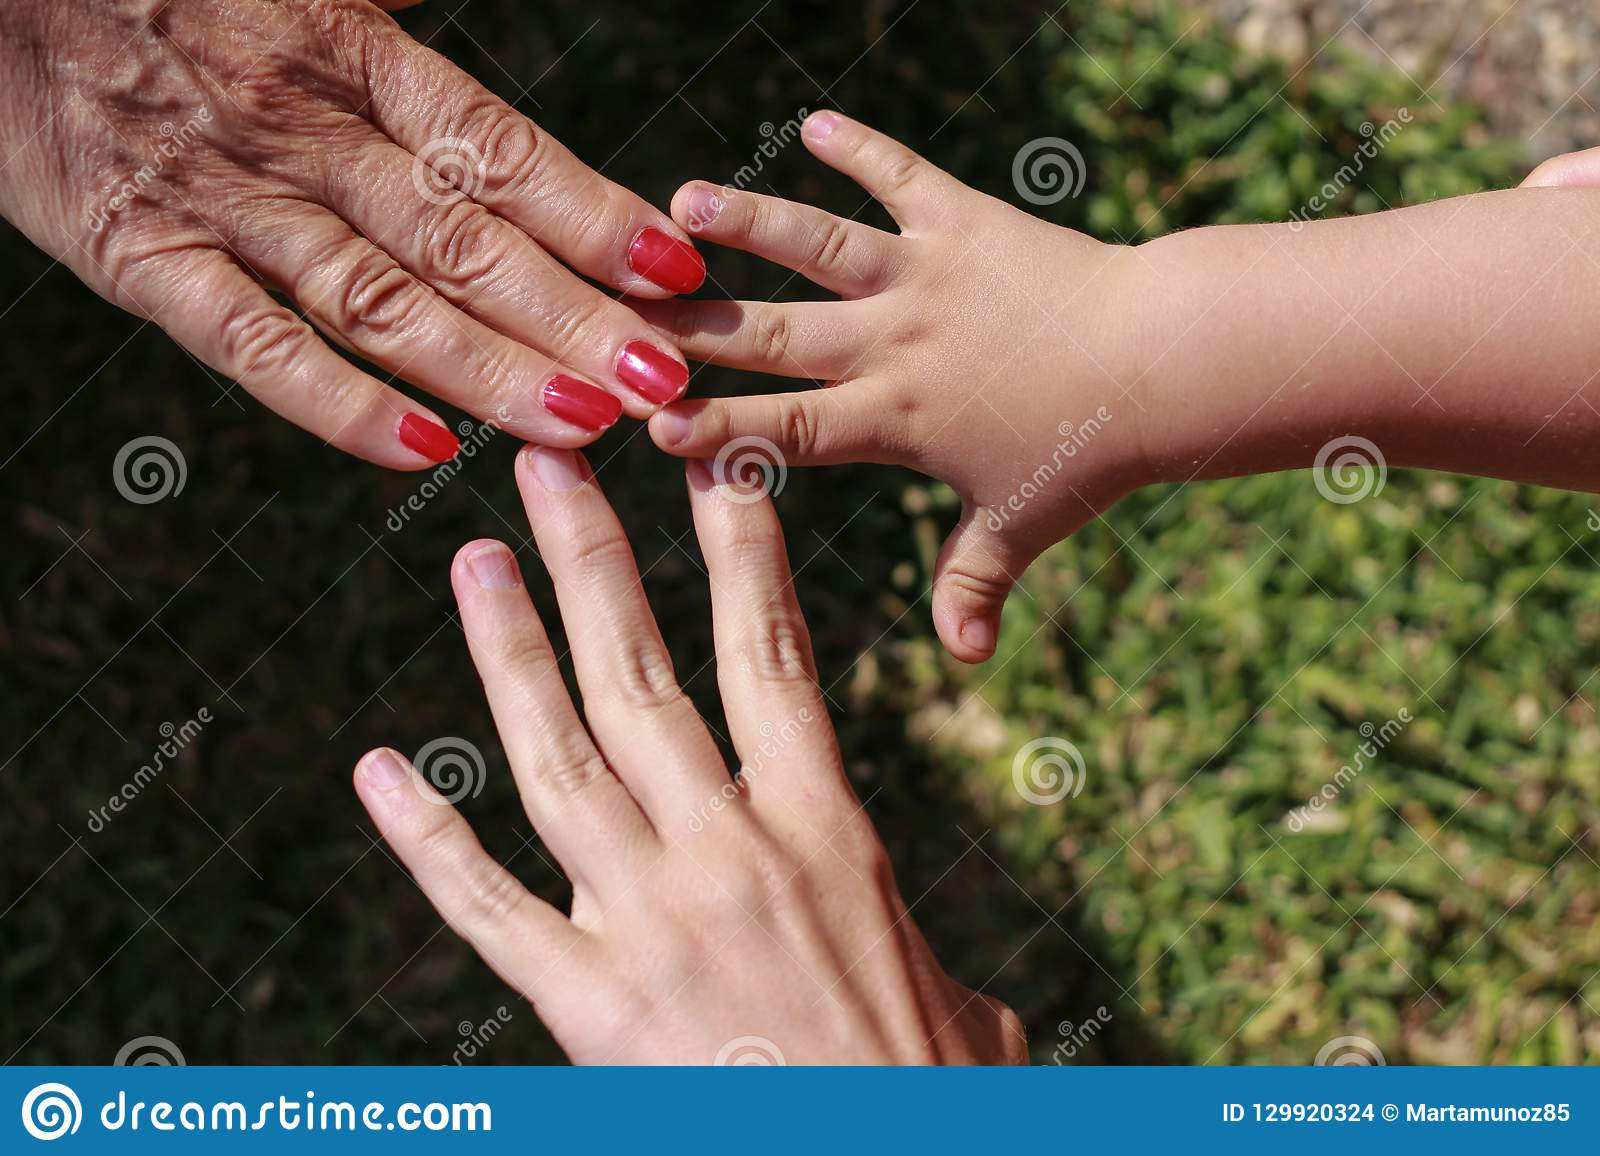 Three hands of family: son, mother and grandmother.